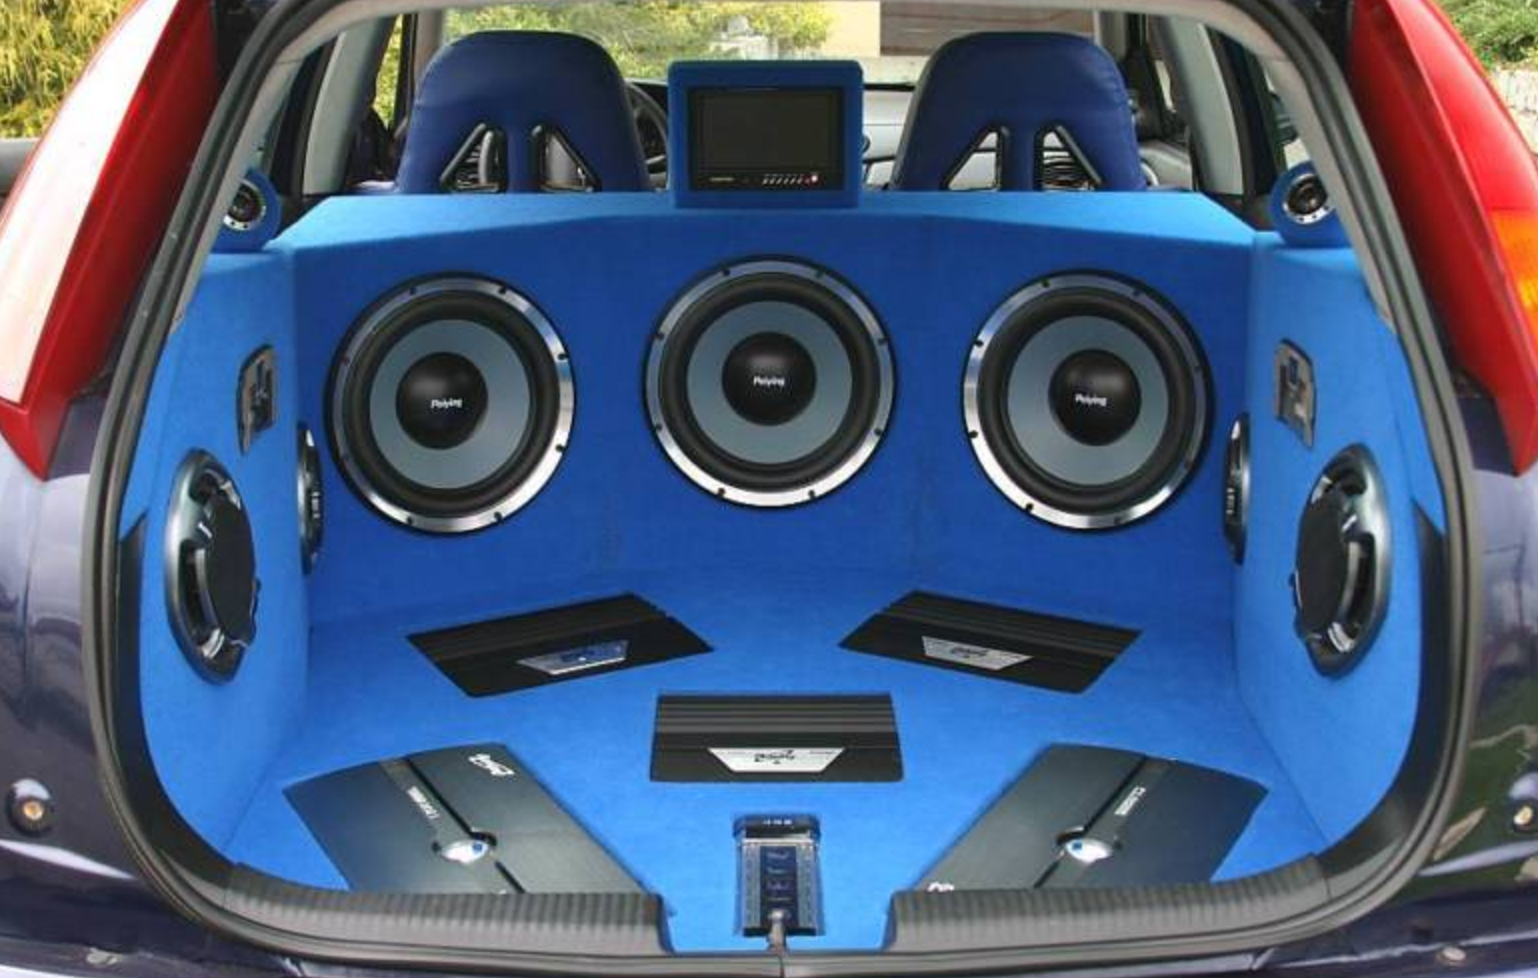 Car Mods Archives - 1CarLifestyle